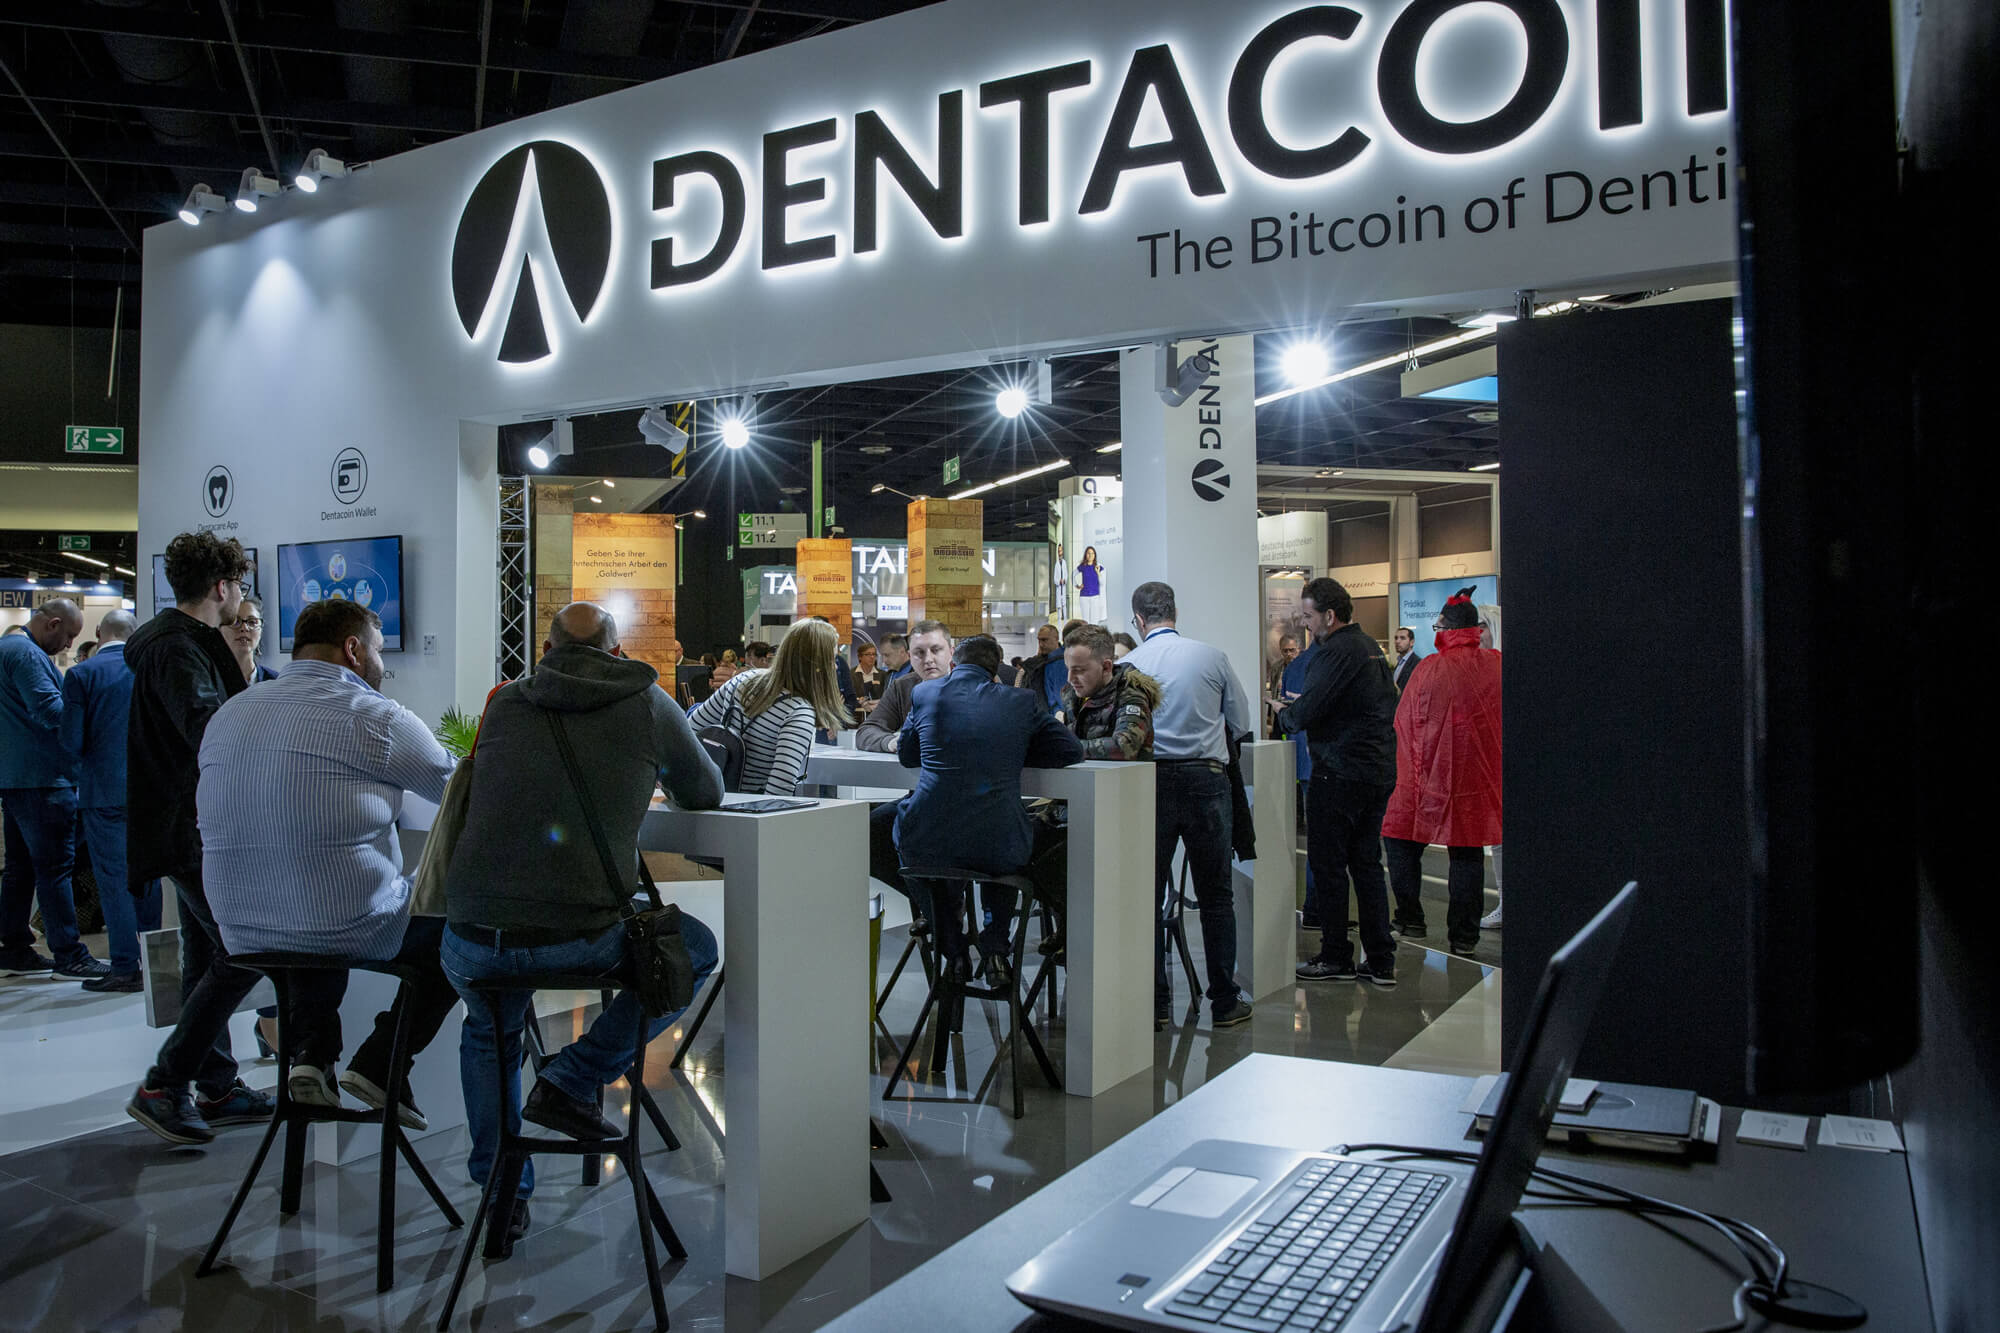 Dentacoin ids stand crowded